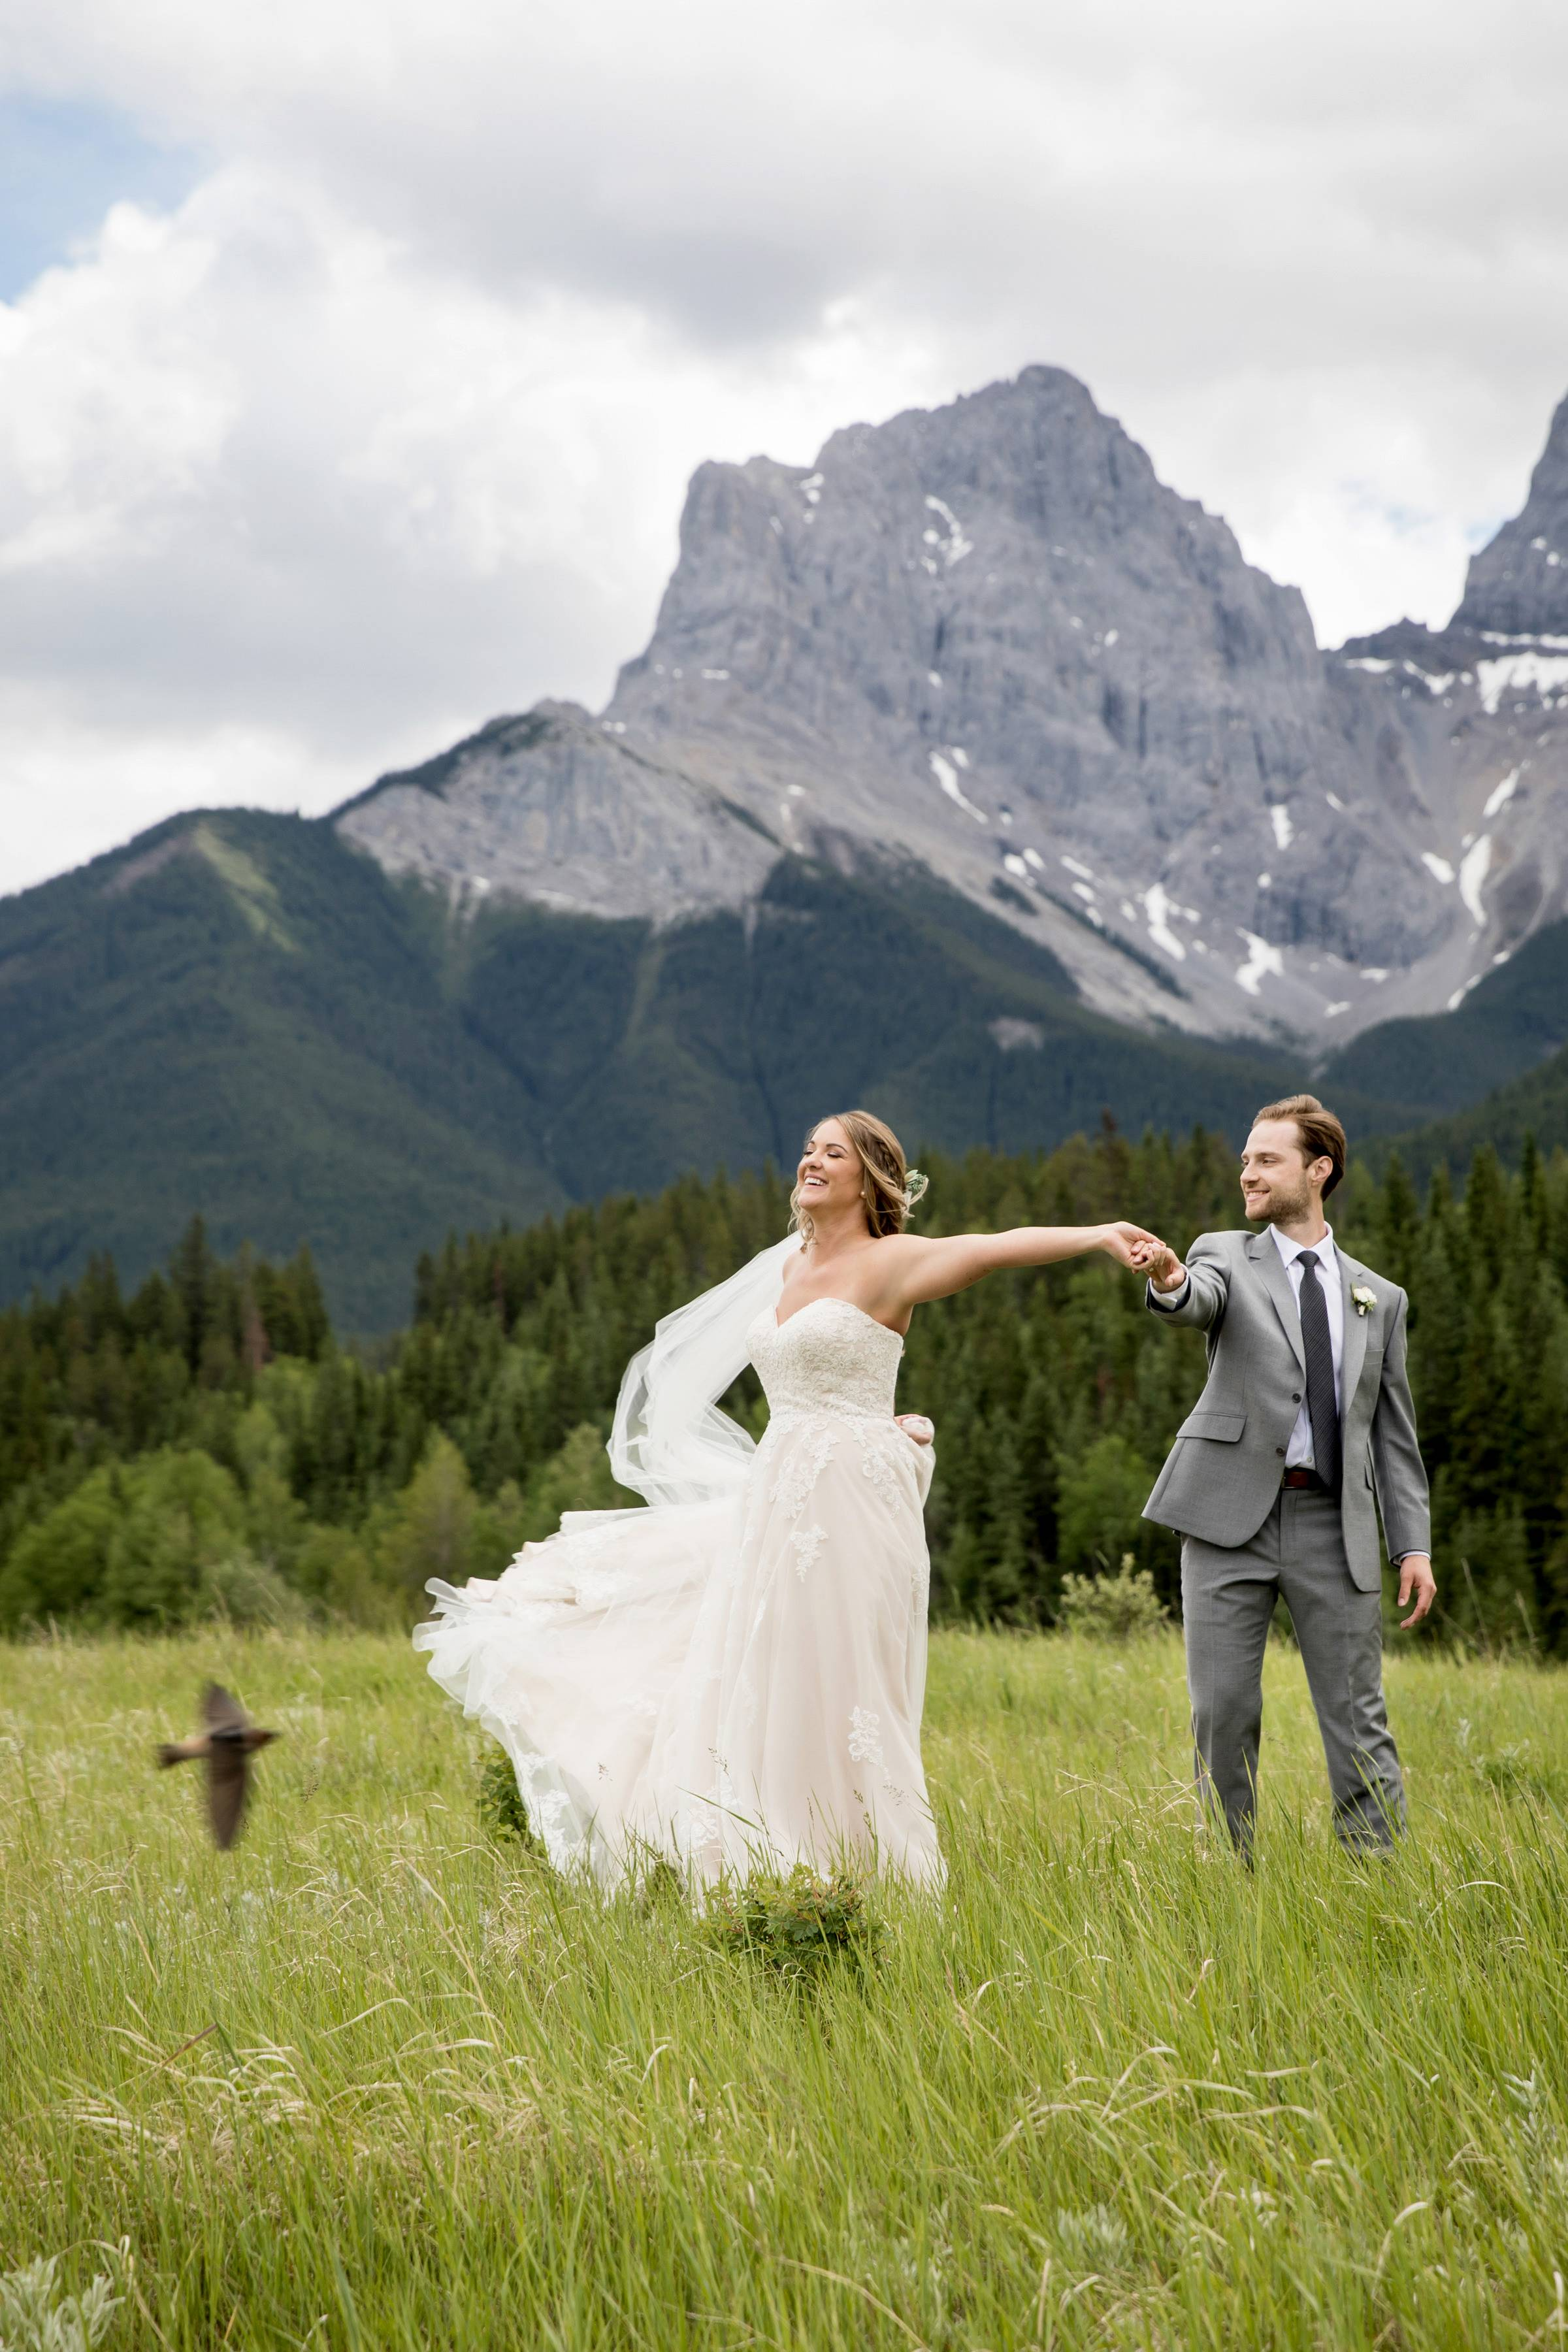 Canmore Wedding and Elopement Photographer, Canmore Micro Wedding, Canmore Intimate Wedding, Bride a